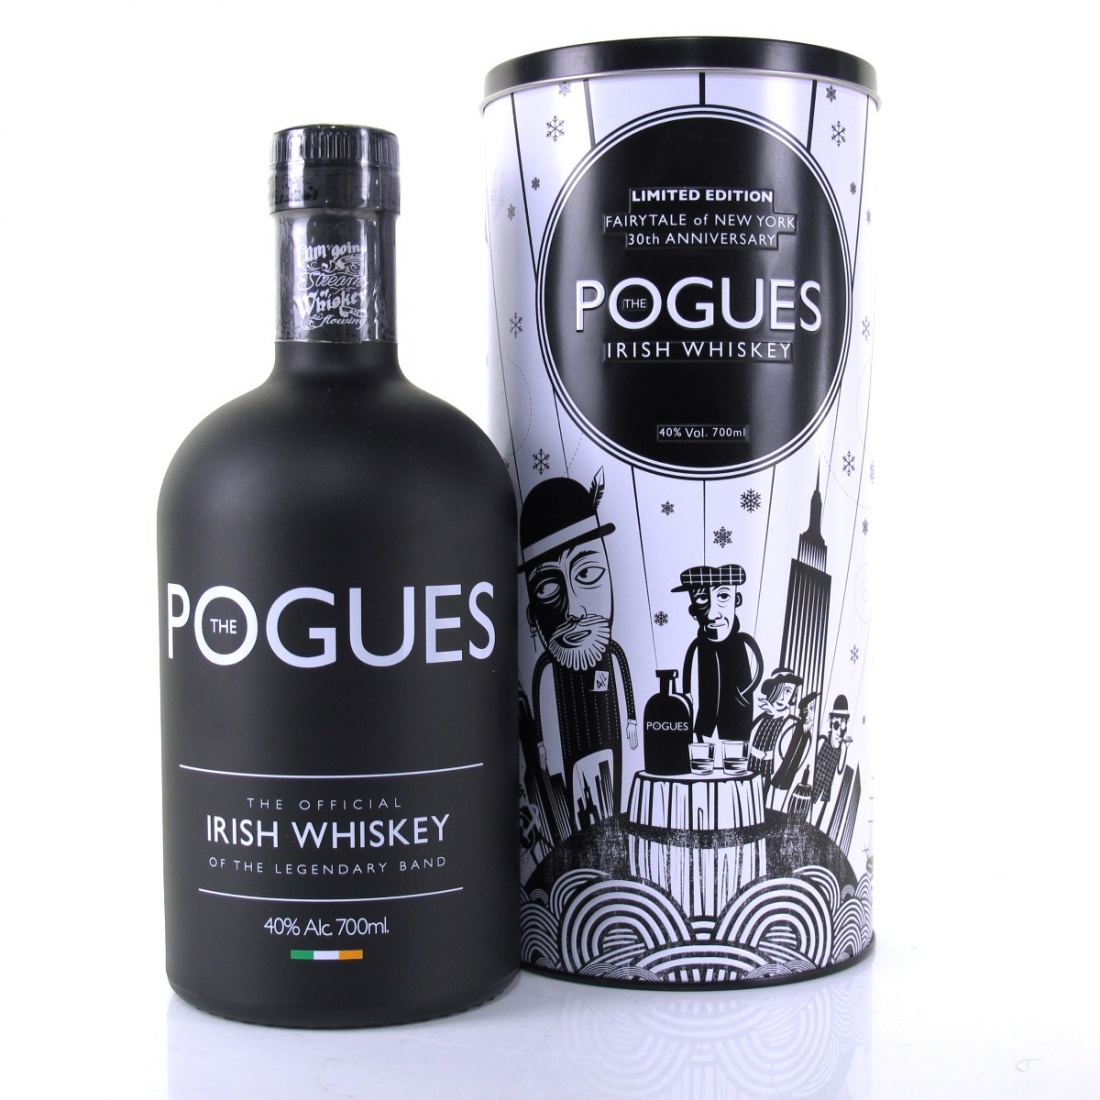 Pogues Irish Whiskey / Farytail of New York